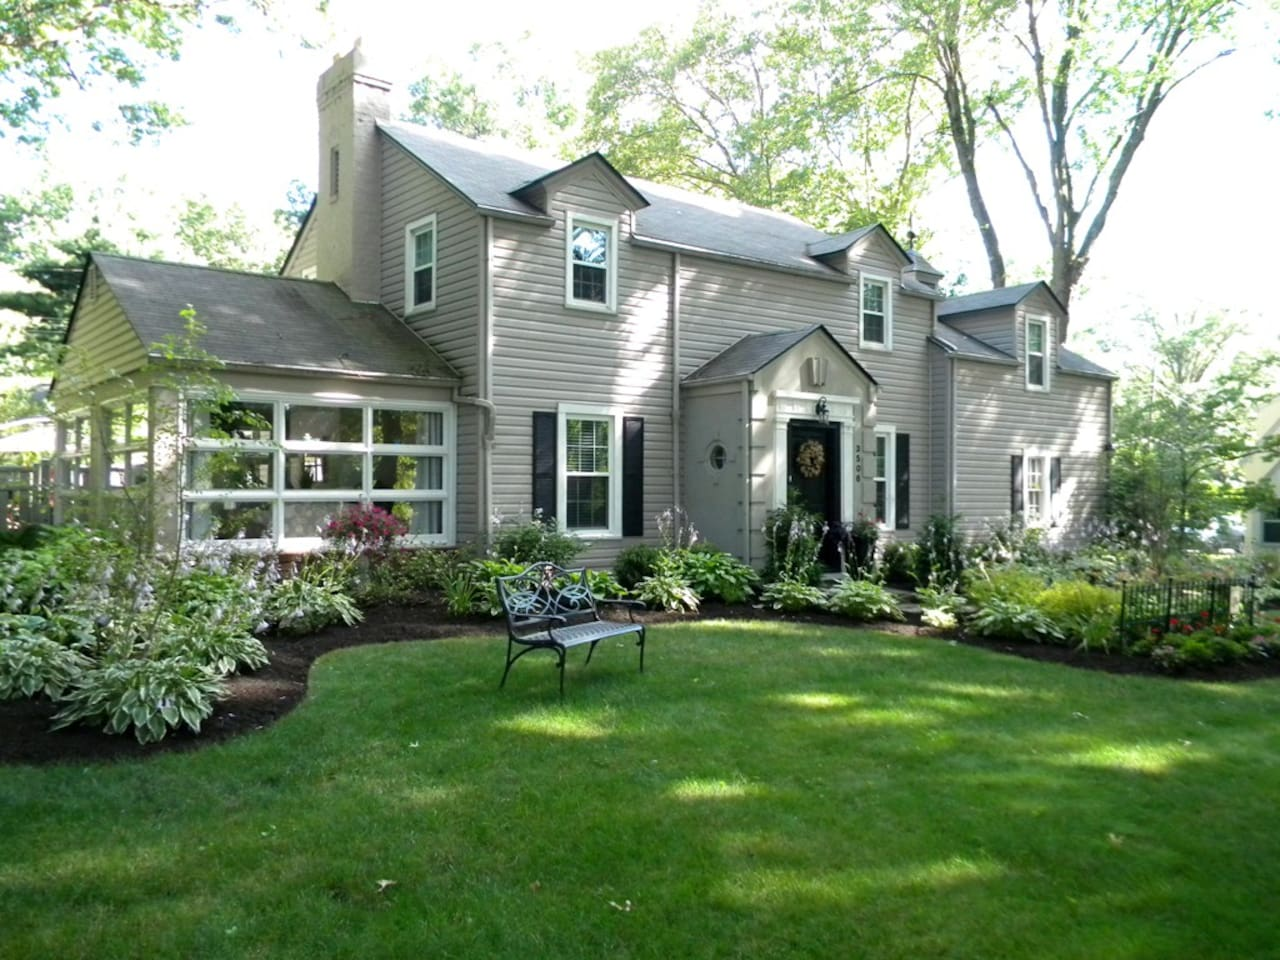 Large home in the upscale neighborhood of Avondale in Canton Ohio, Just one mile to just about everything you could need, I -77, Parks, Hall  of Fame, Benson Field,  Restaurants, Churches, Parks, & grocery store. YES - All within just 1 MILE!